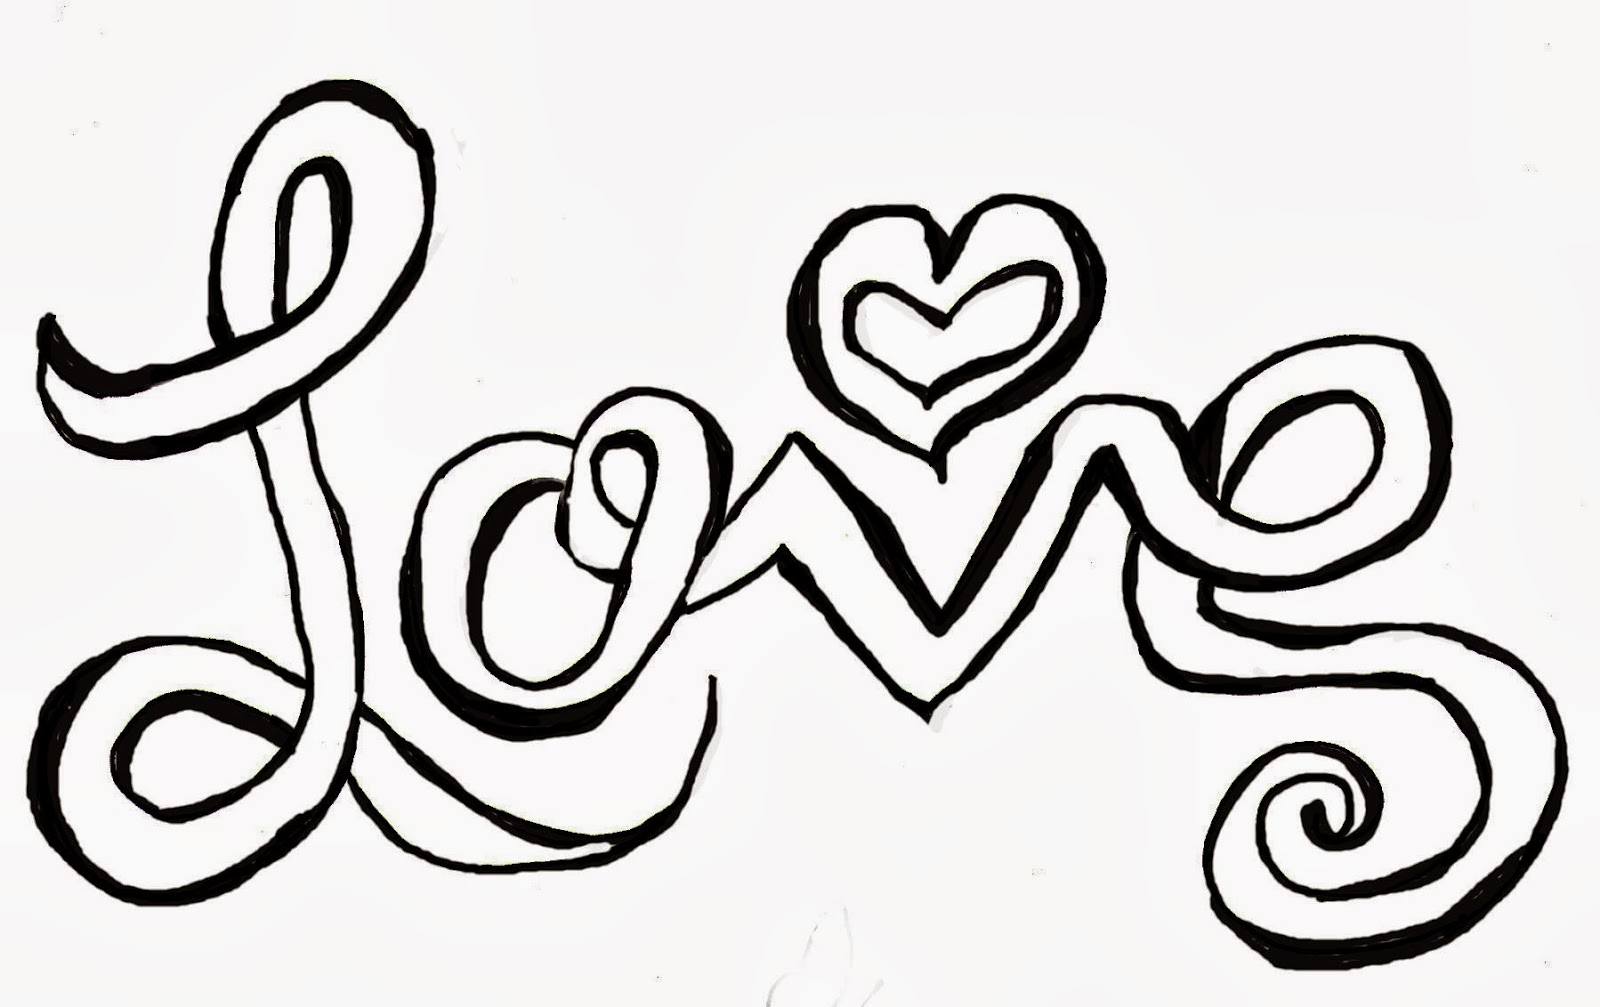 Drawn love The My Images Treasure Christian